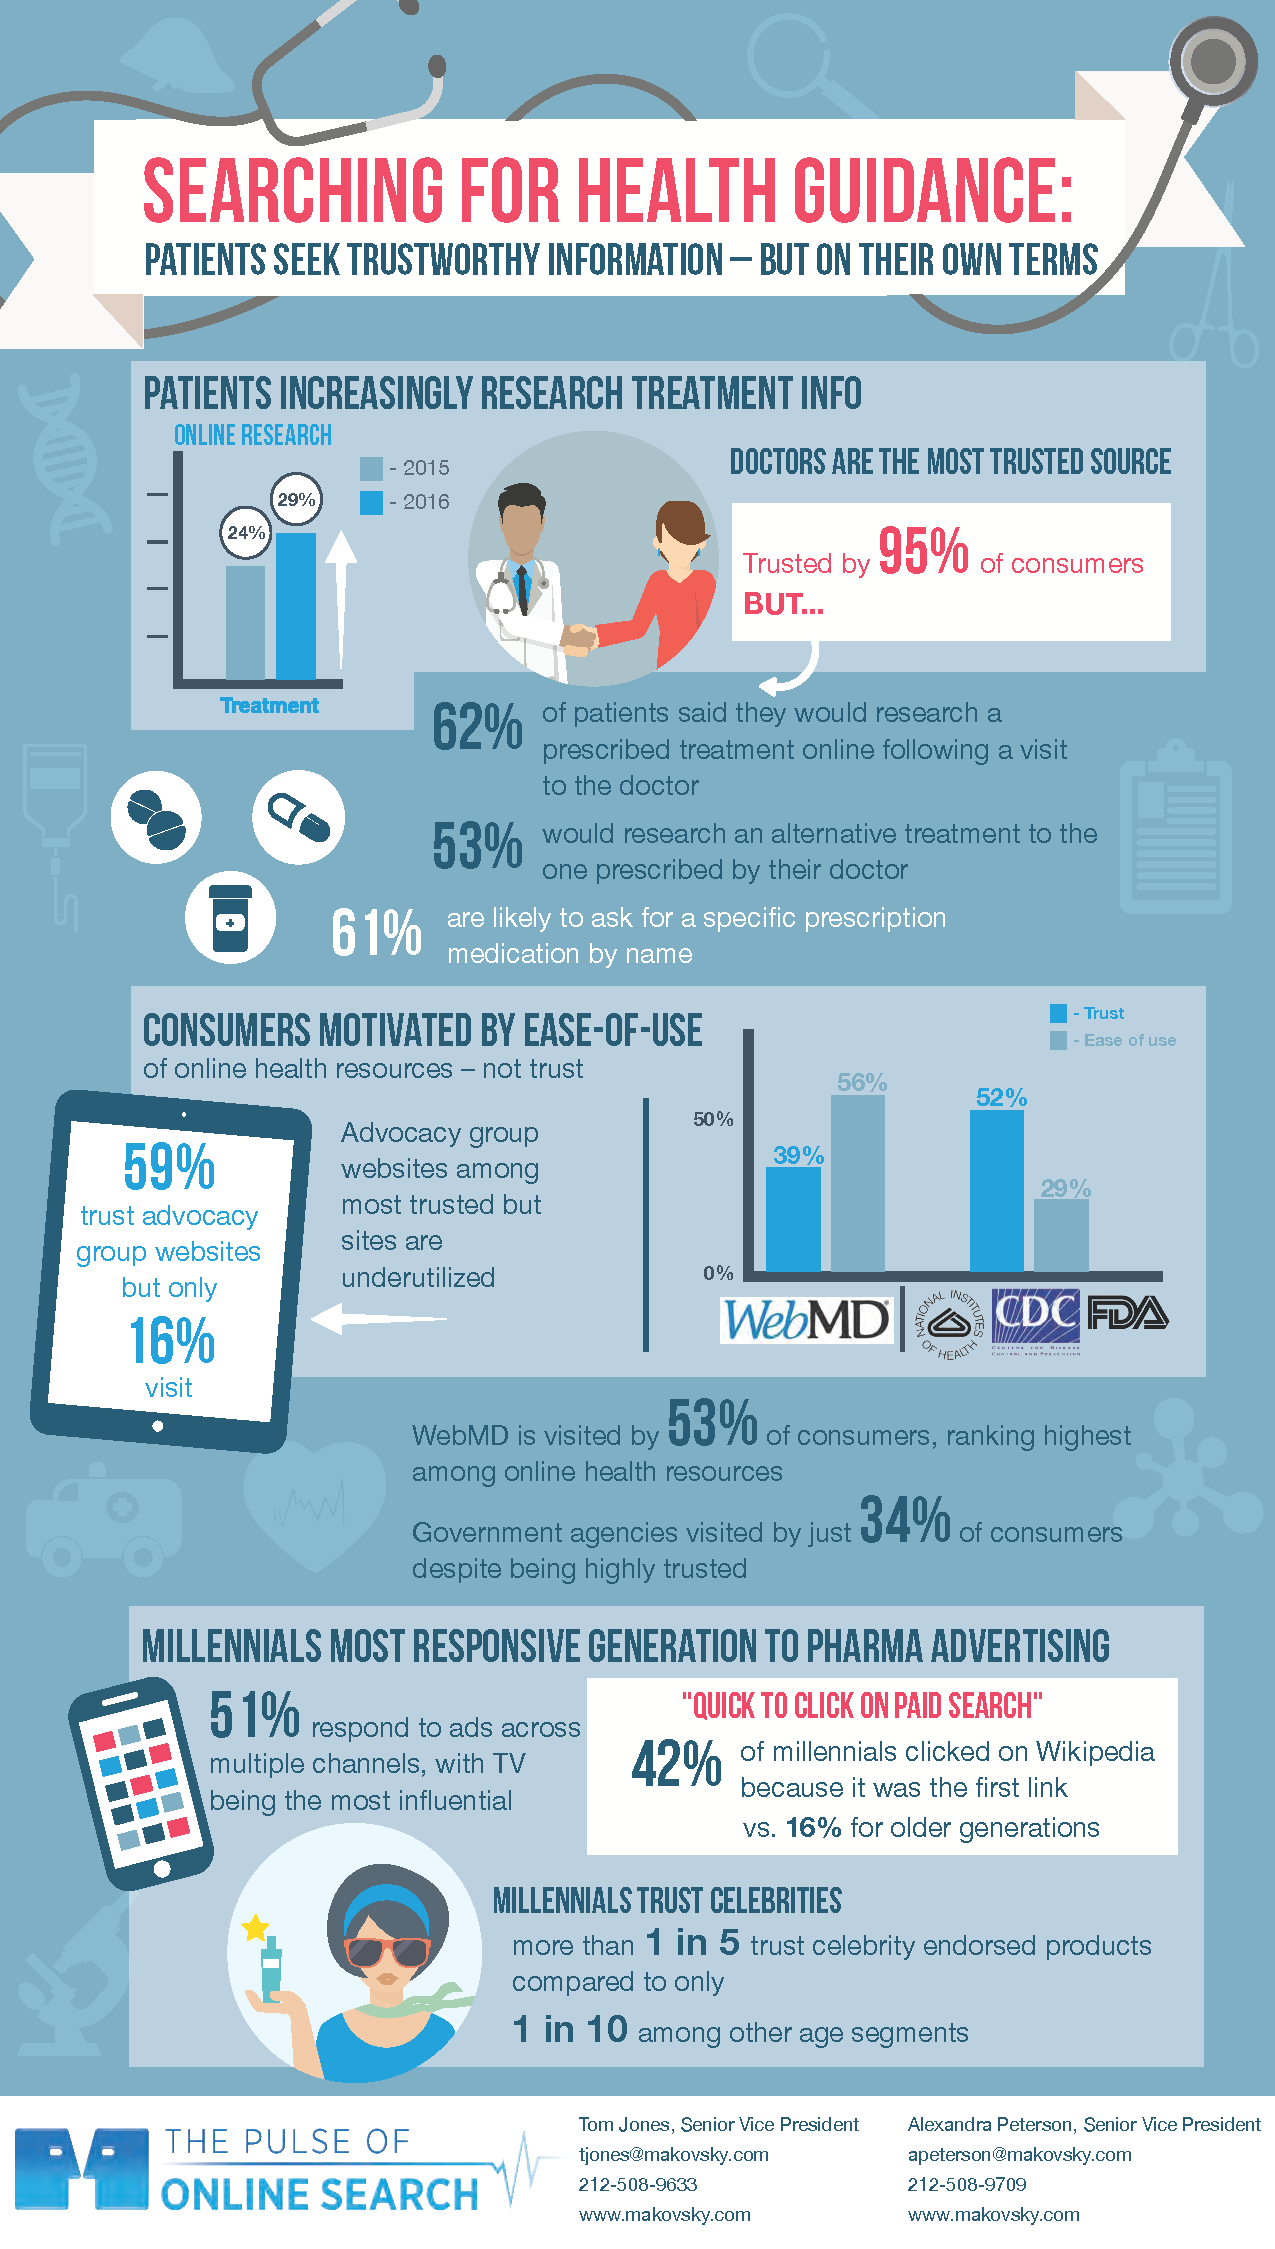 Makovsky Health - Searching for Health Guidance Infographic